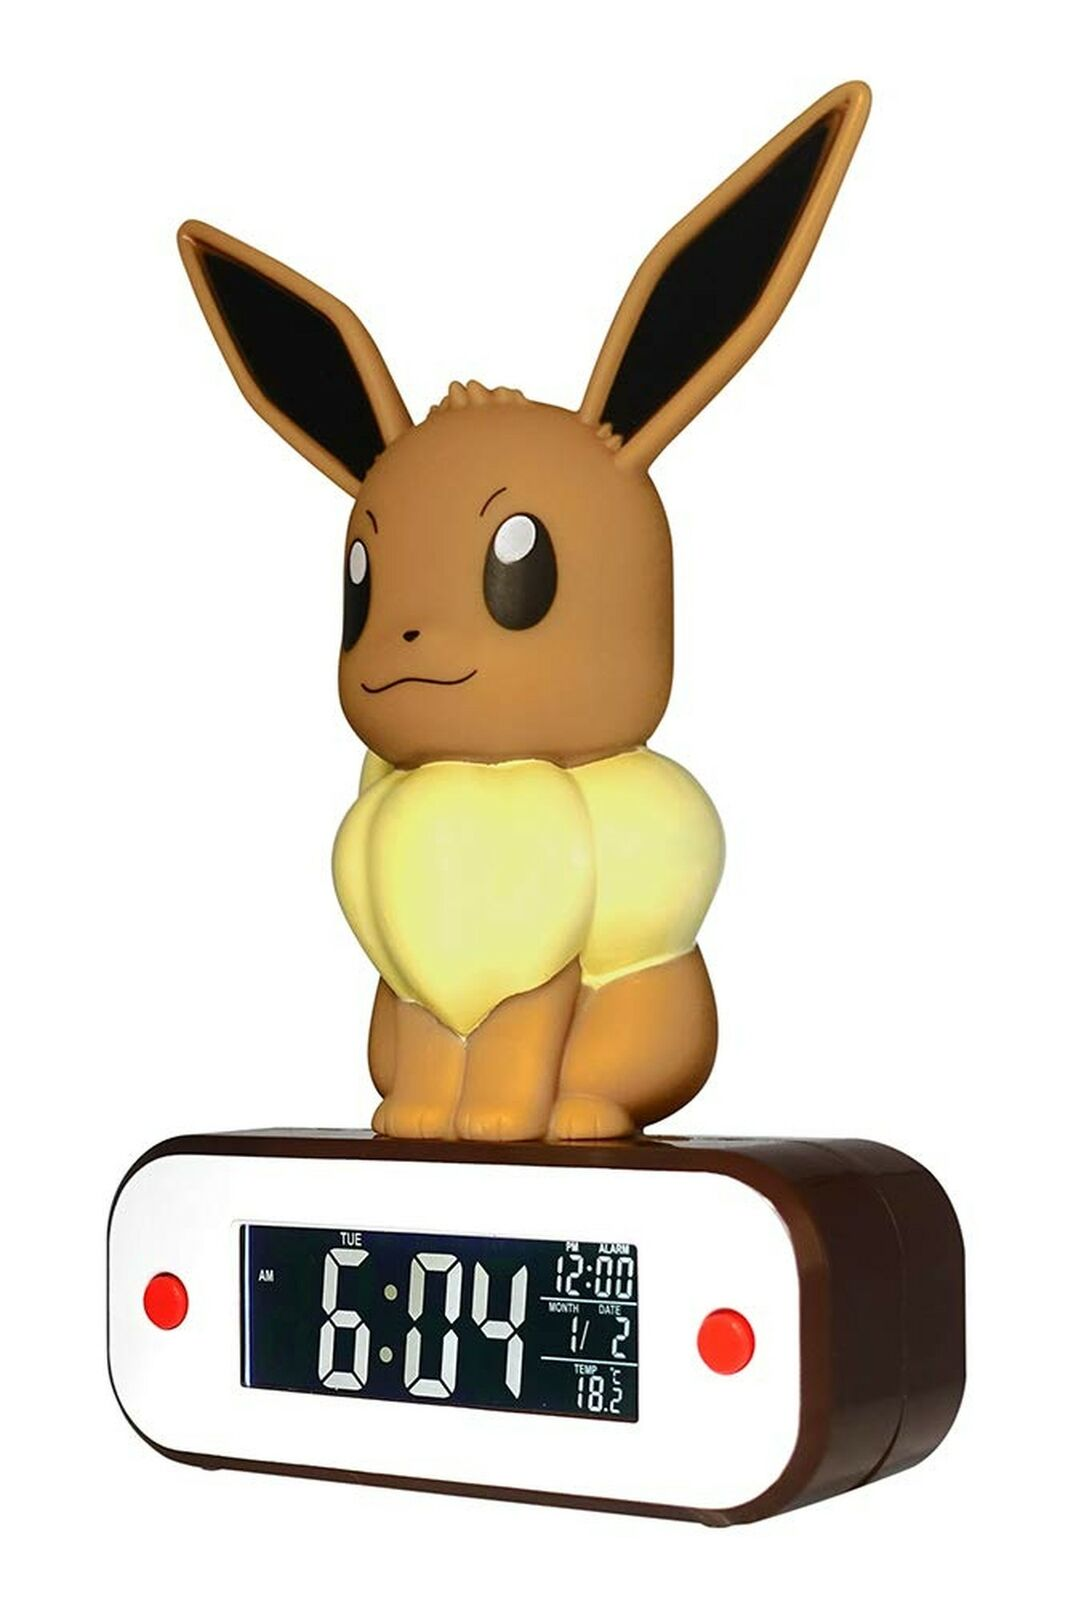 TEKNOFUN 811370 Pokemon Evee Alarm and Lamp braun